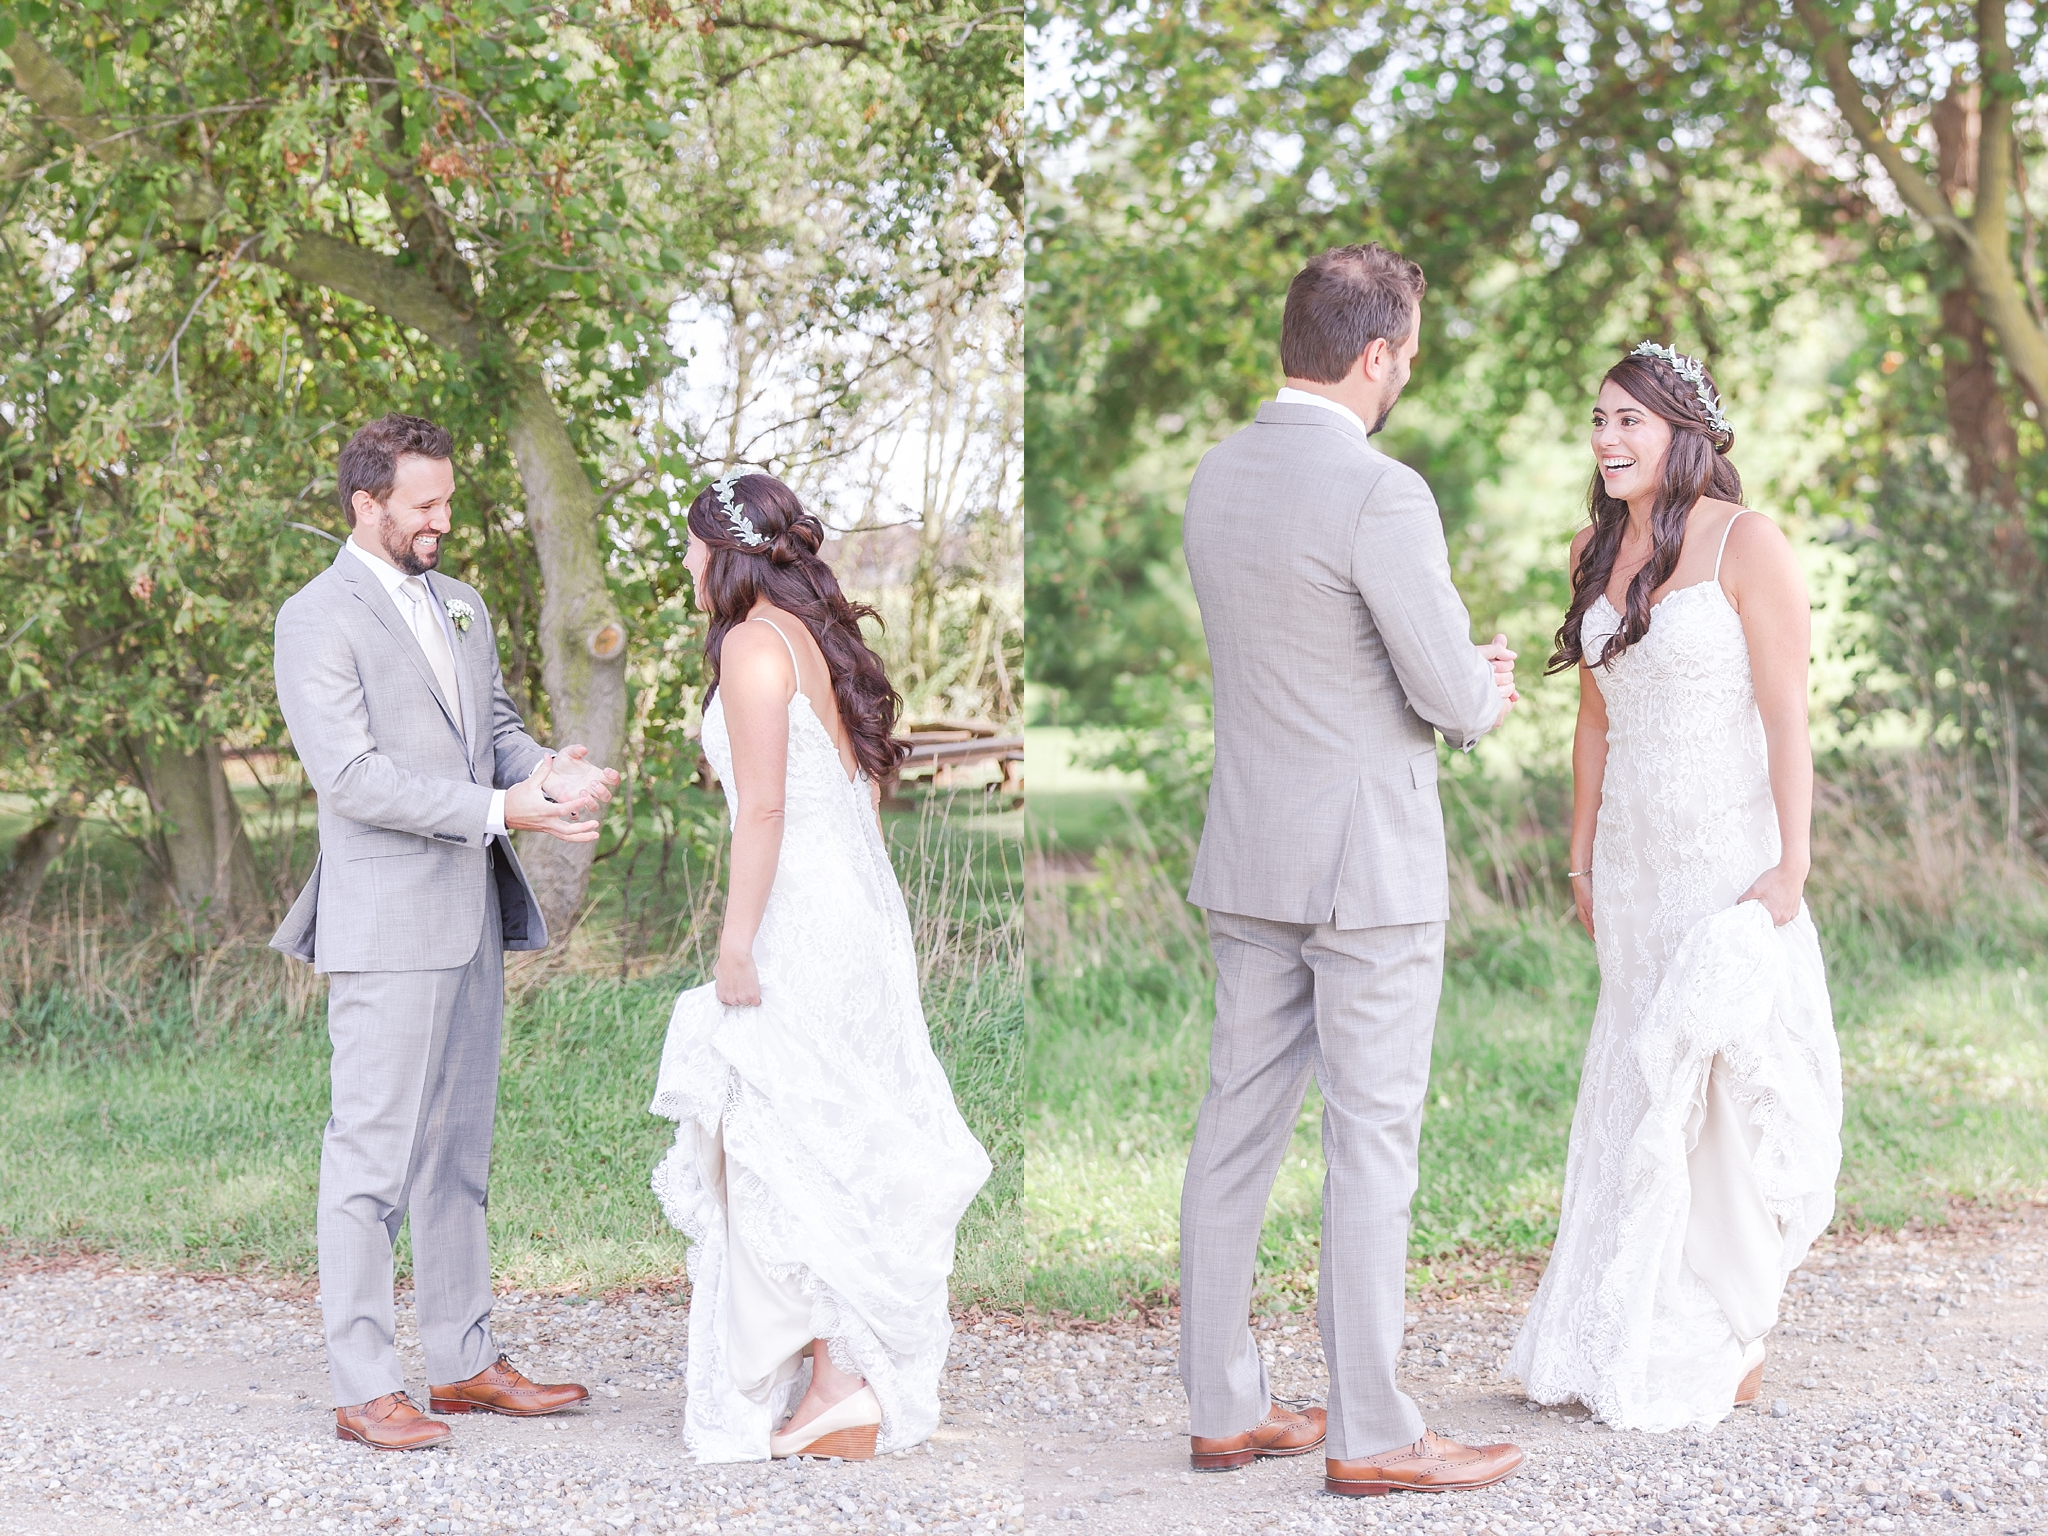 natural-rustic-wedding-photos-at-frutig-farms-the-valley-in-ann-arbor-michigan-by-courtney-carolyn-photography_0017.jpg